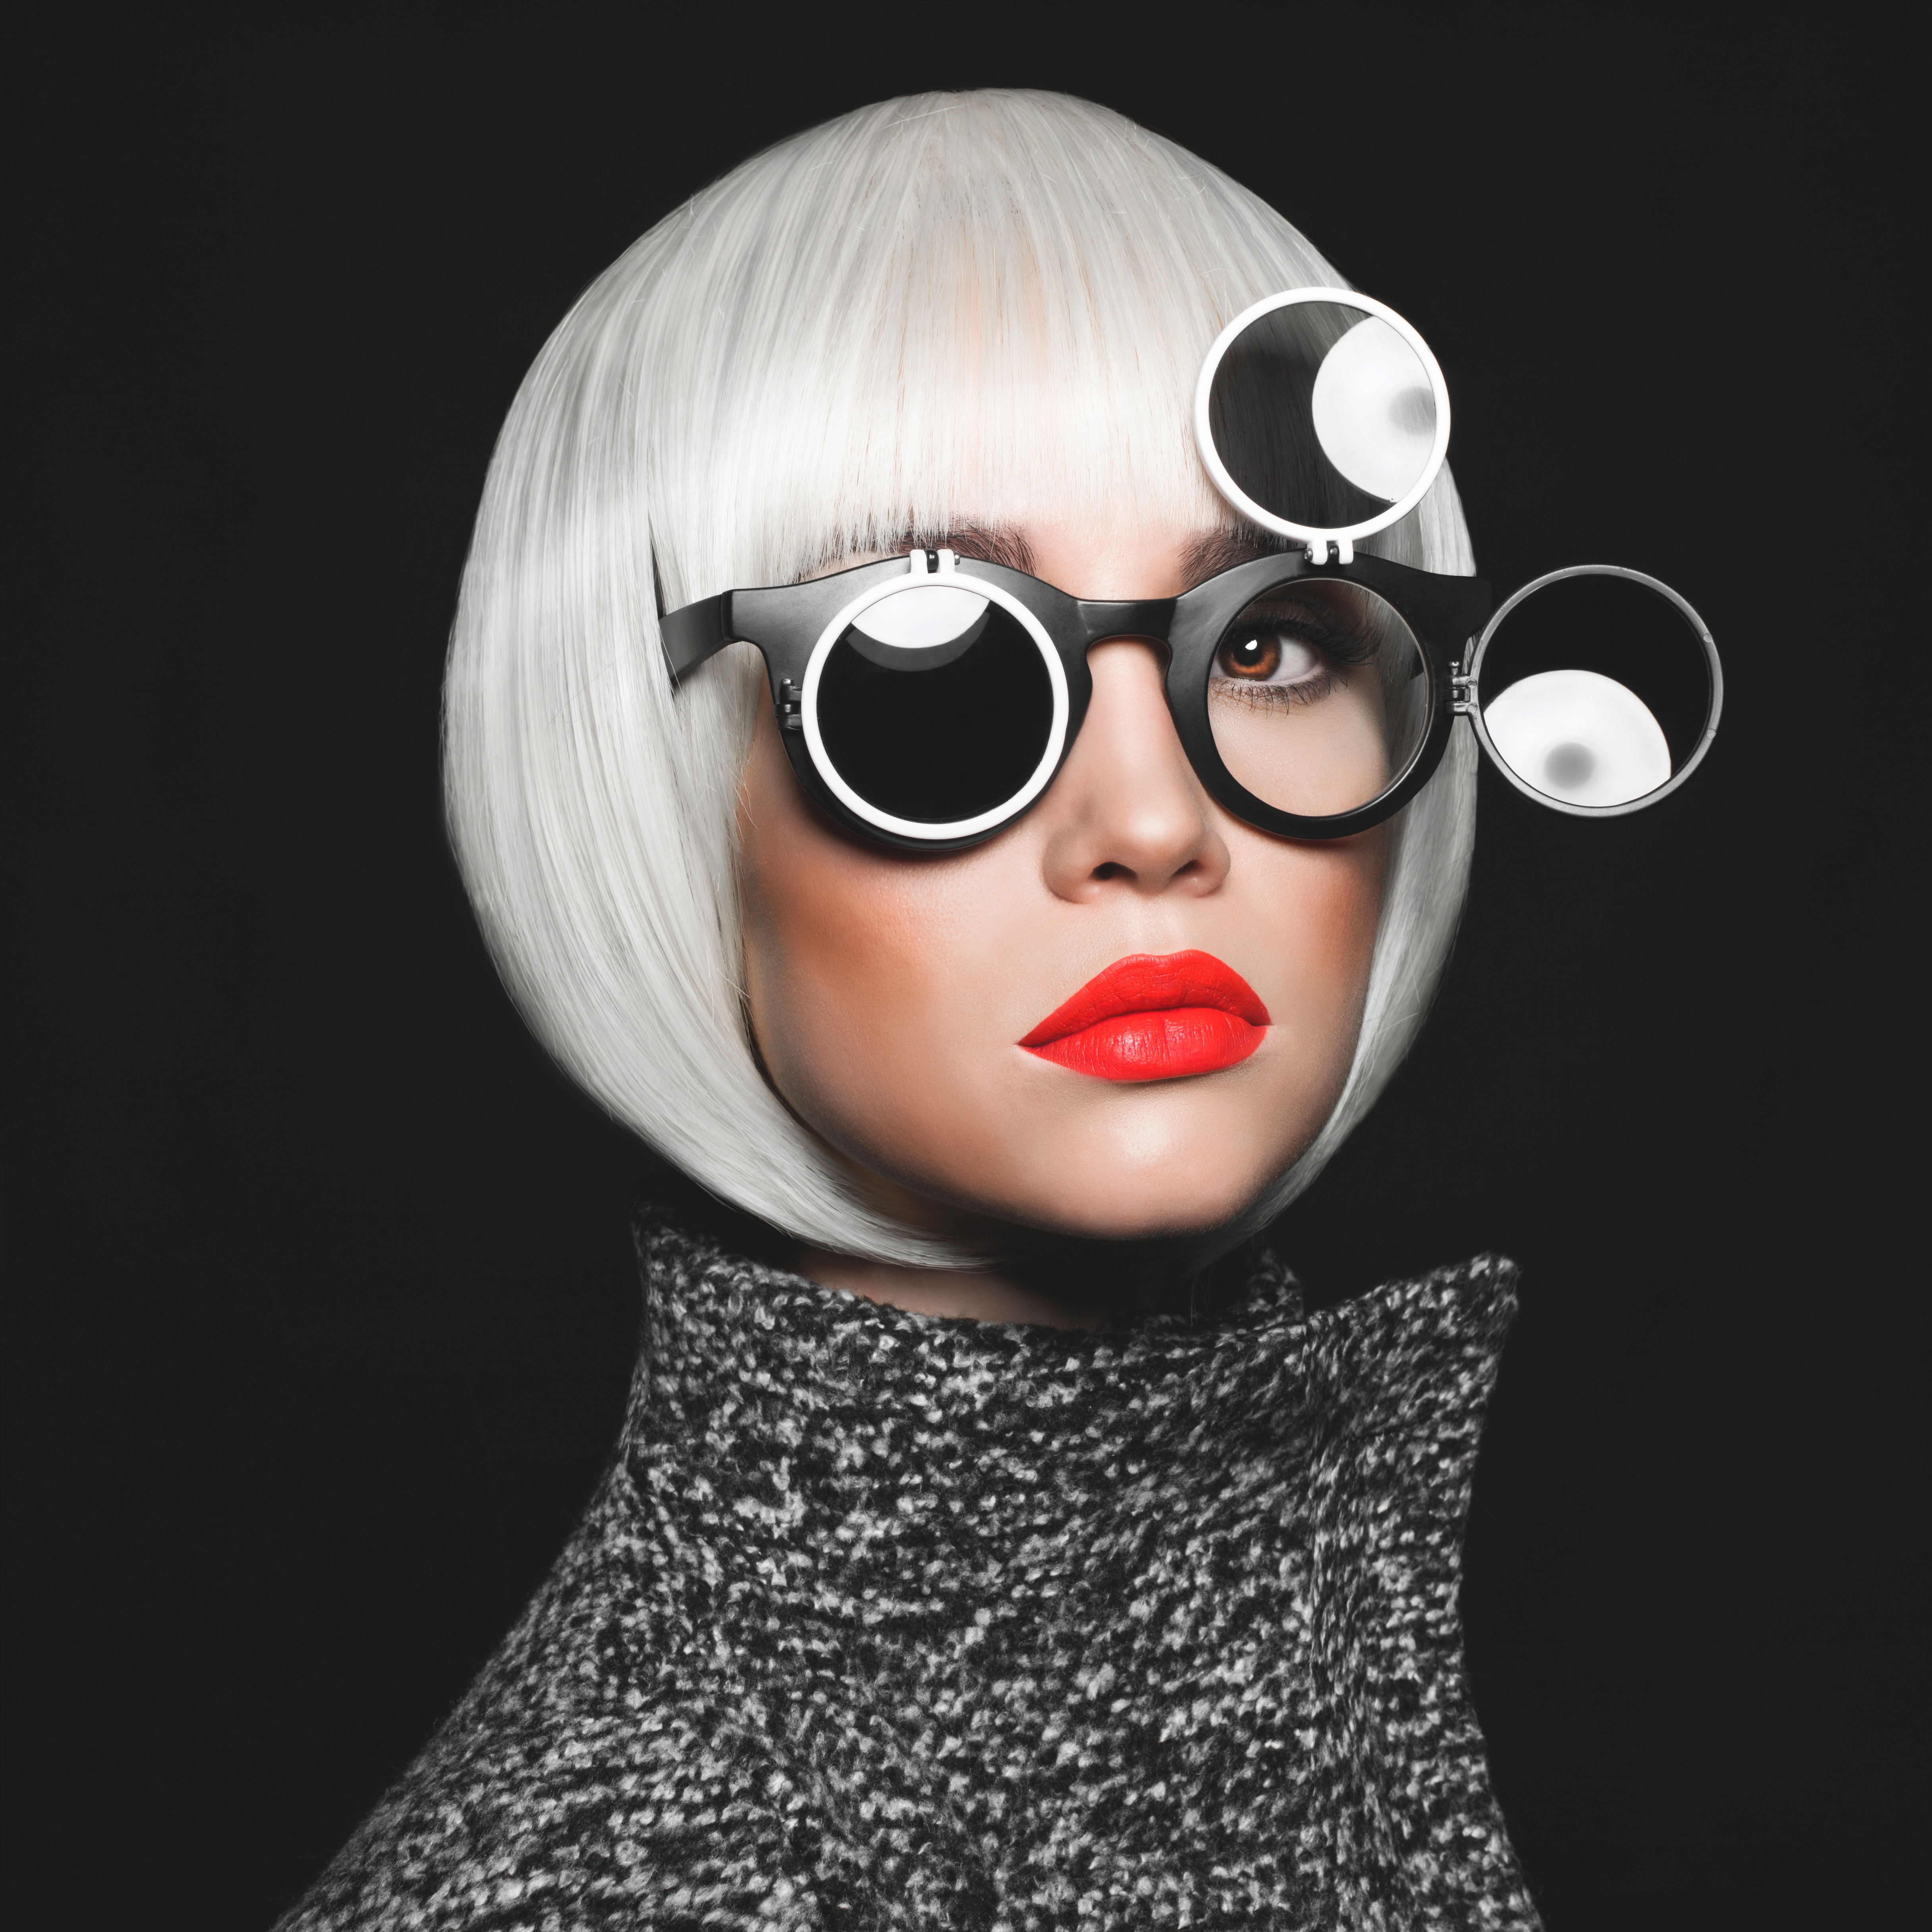 Eyeglasses Trends in 2016: What To Wear?